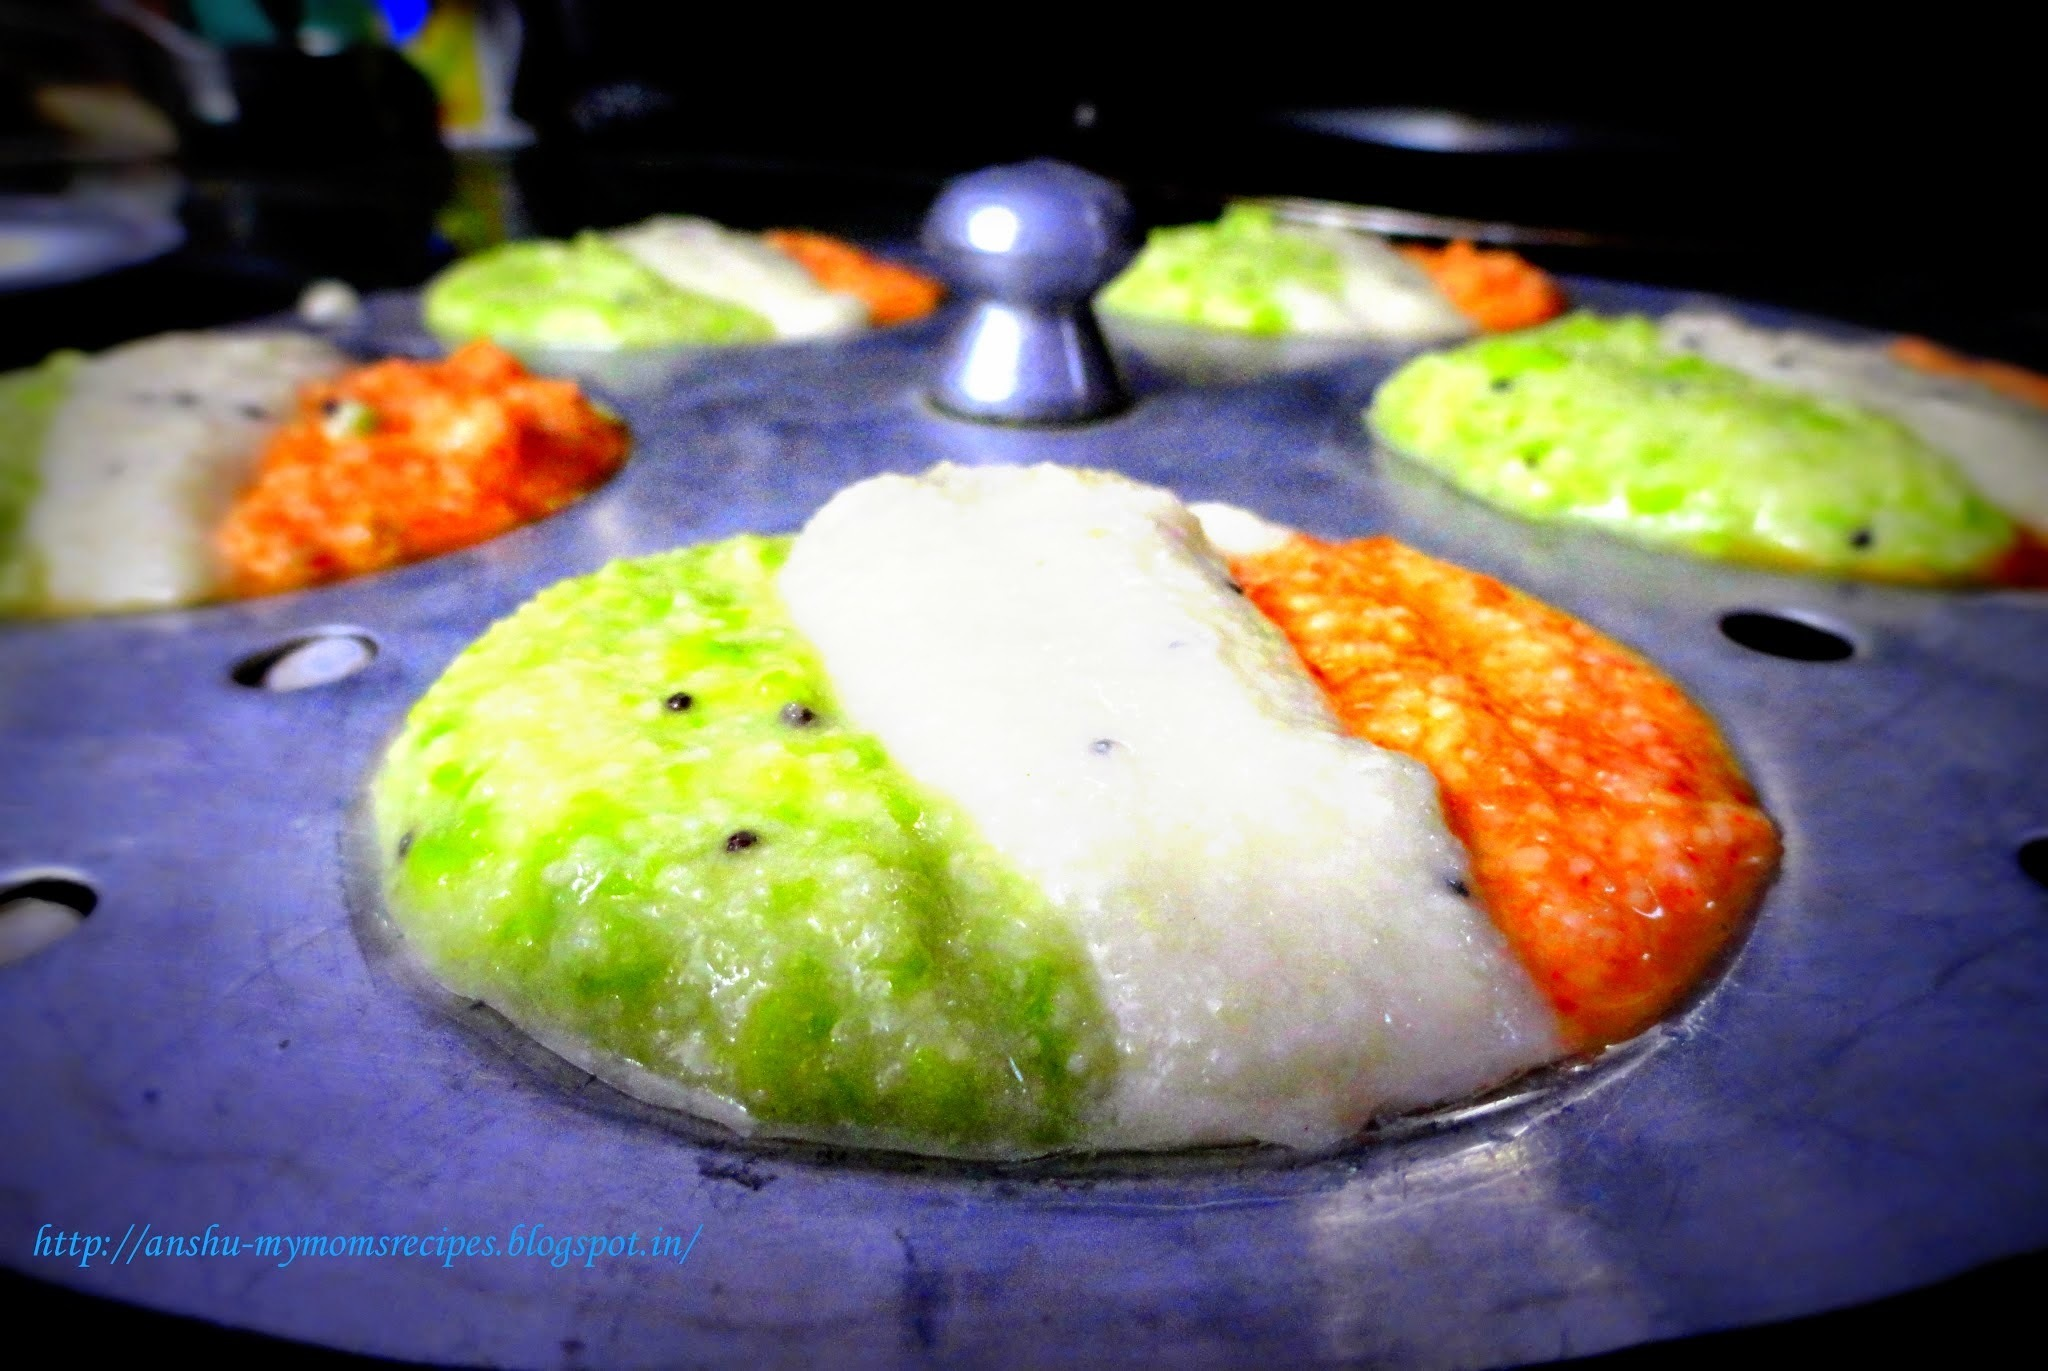 Independence Day Tricolor Idli (Tricolor Steamed Pancakes) - yeah! I know my prompt recipe :-)